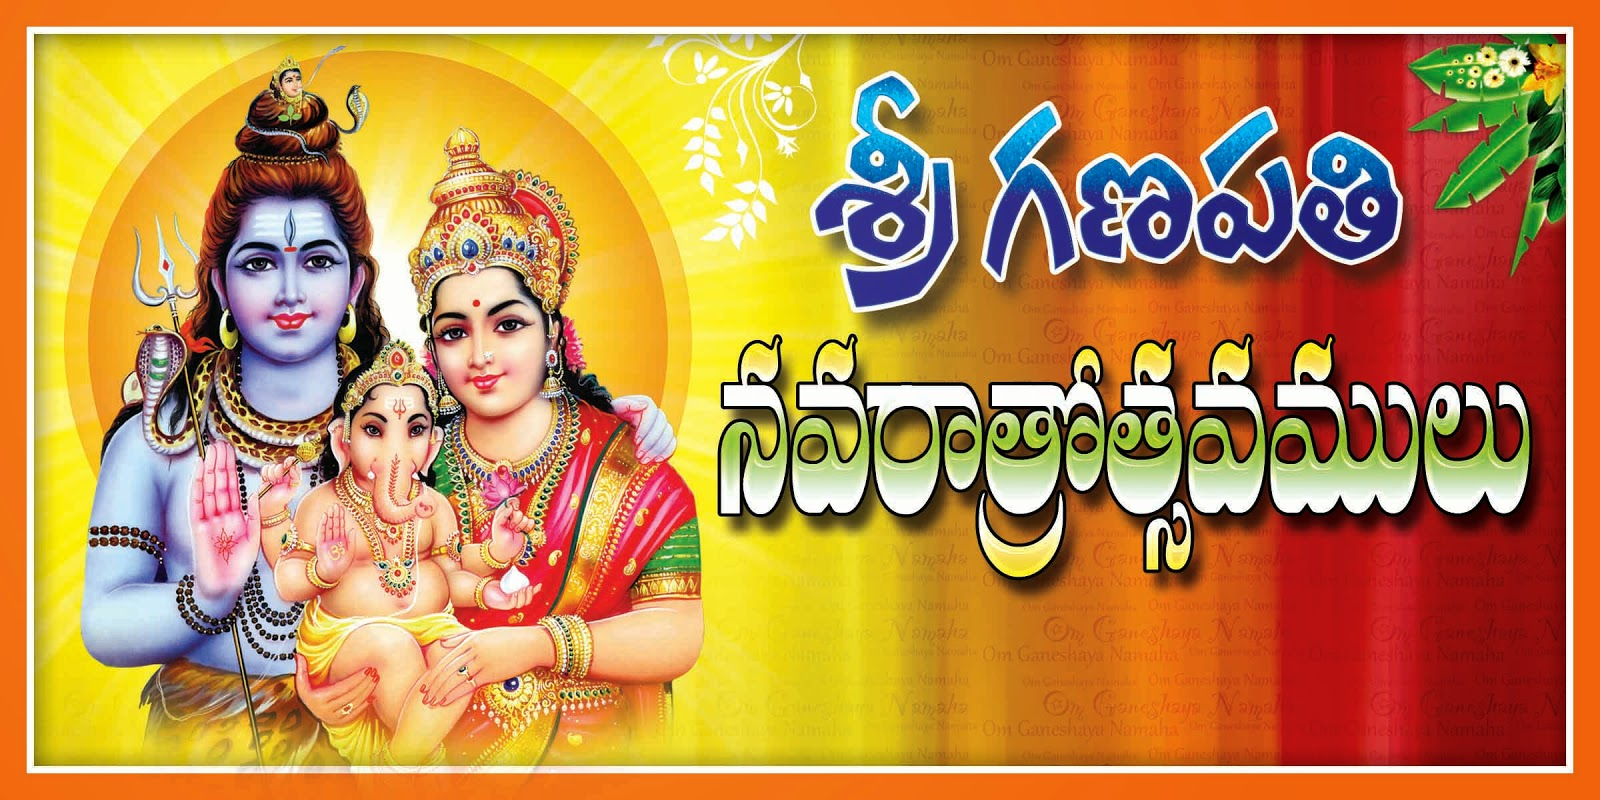 latest-vinayaka-chavithi-telugu-quotes-and-sayings-greetings-wishes-naveengfx.com